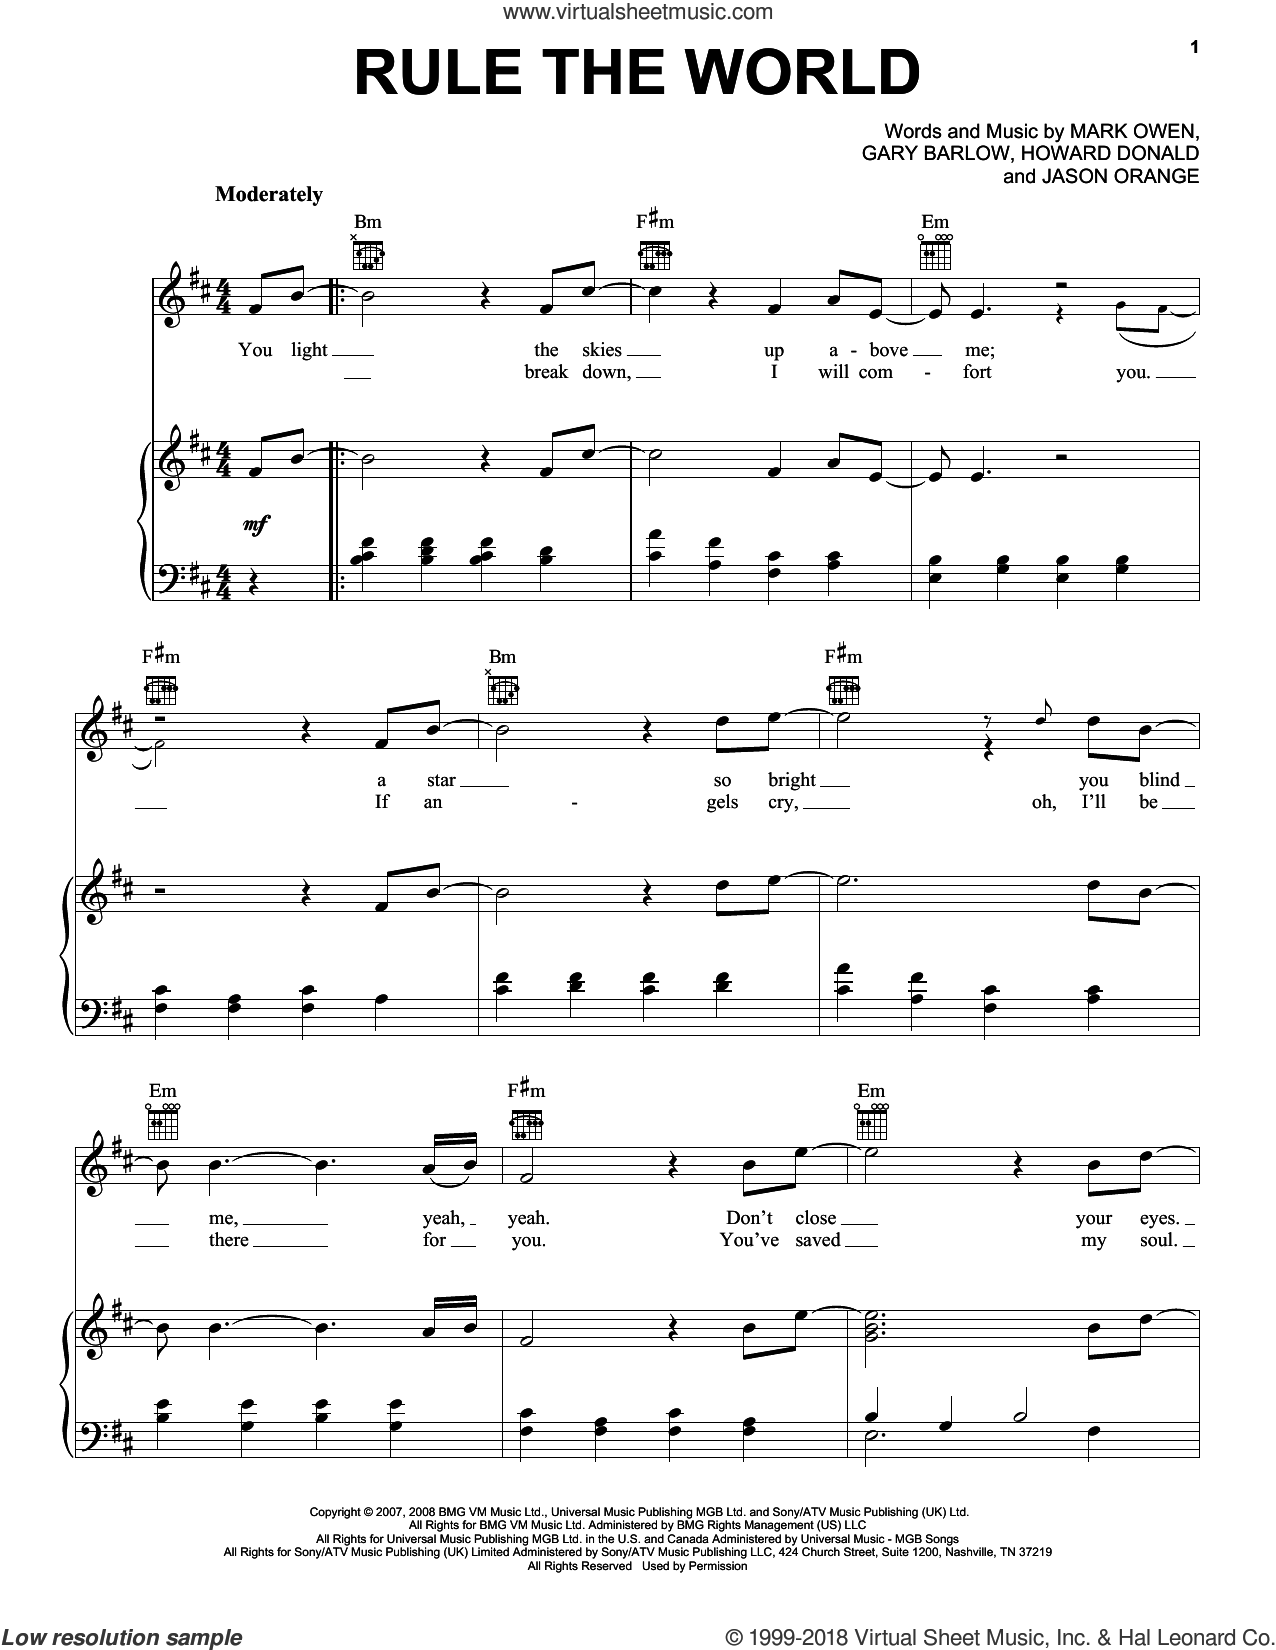 Rule The World sheet music for voice, piano or guitar by Mark Owen